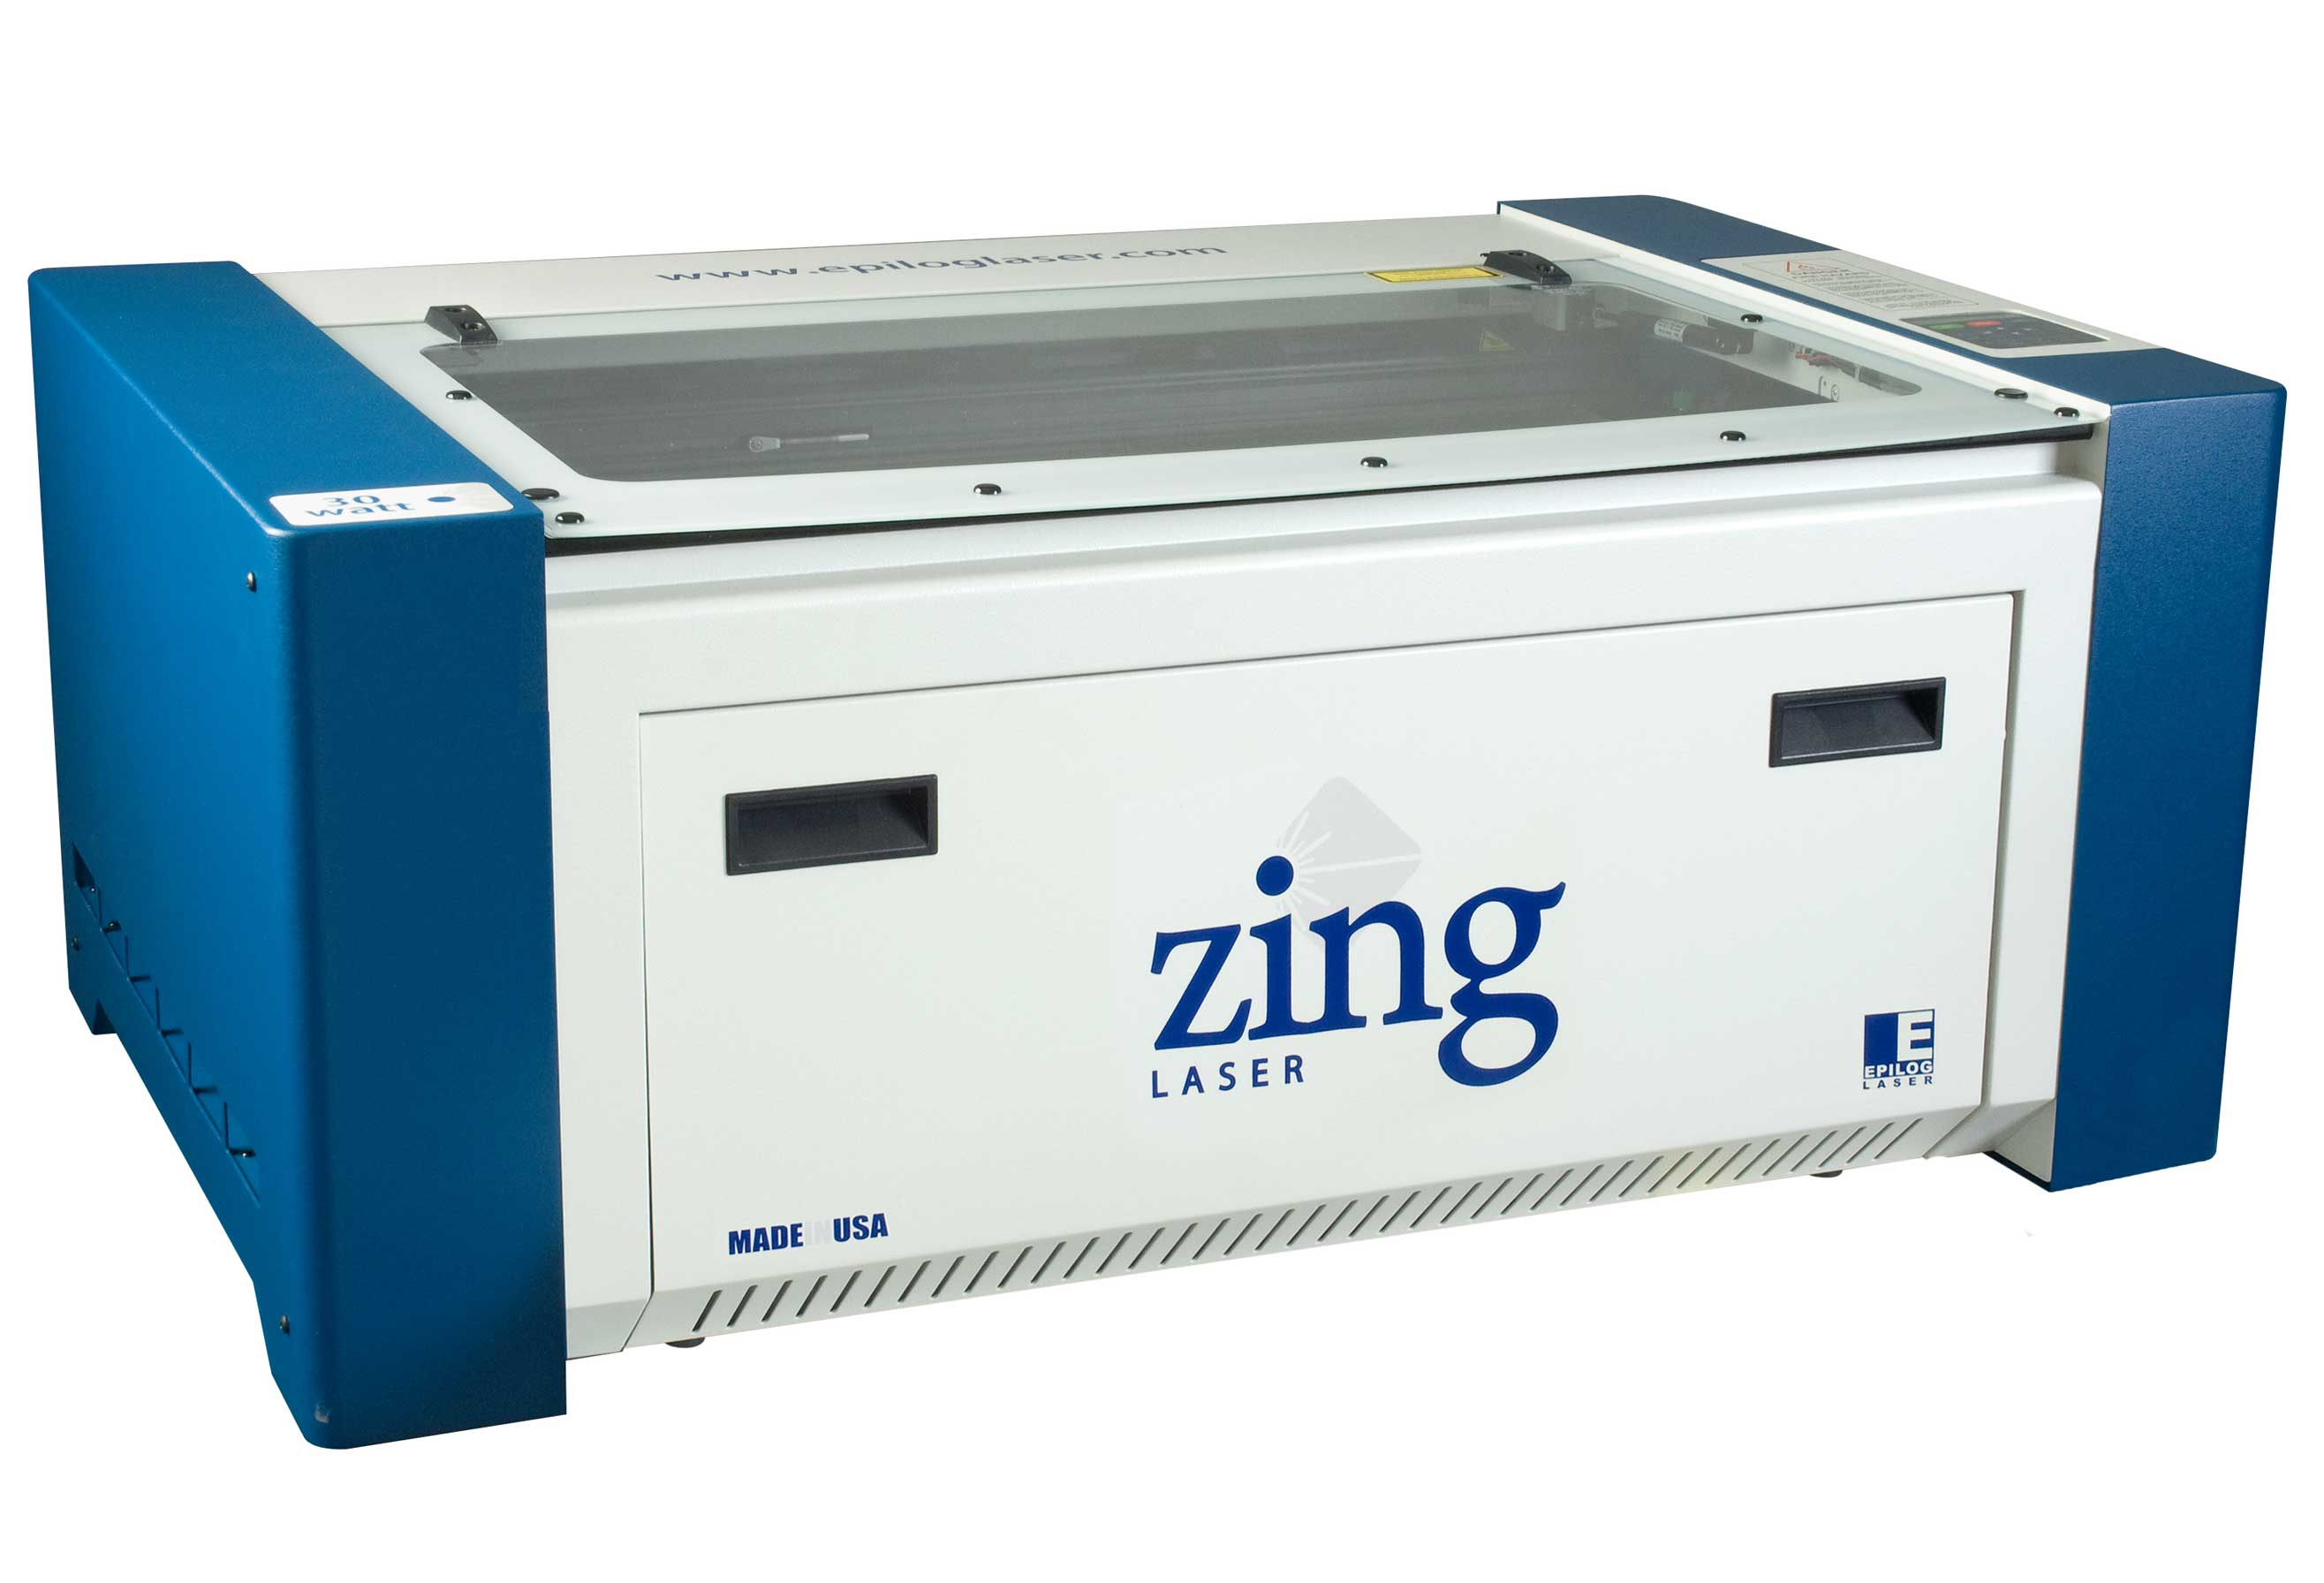 Epilog Zing Laser Engraver And Cutter Machines